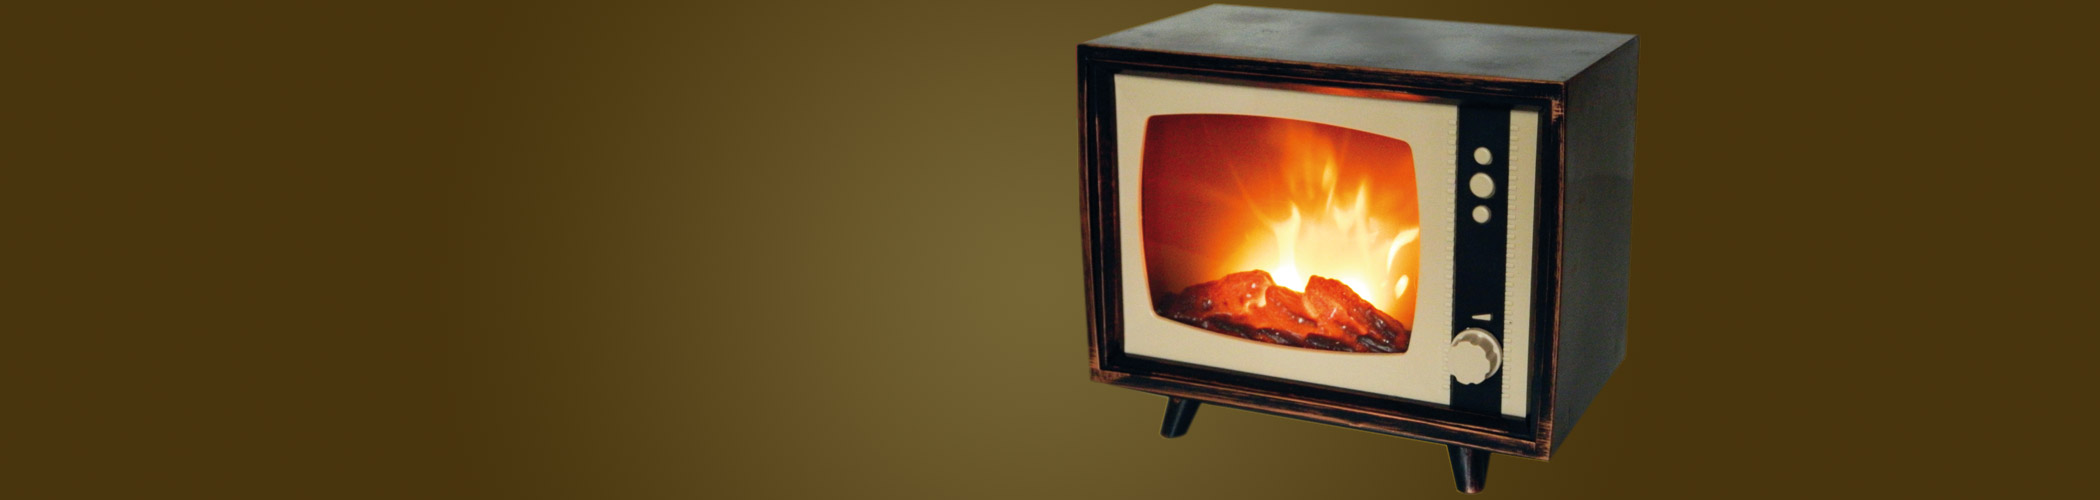 TV Fires - flat screen TV and Retro TV fires.#View Range